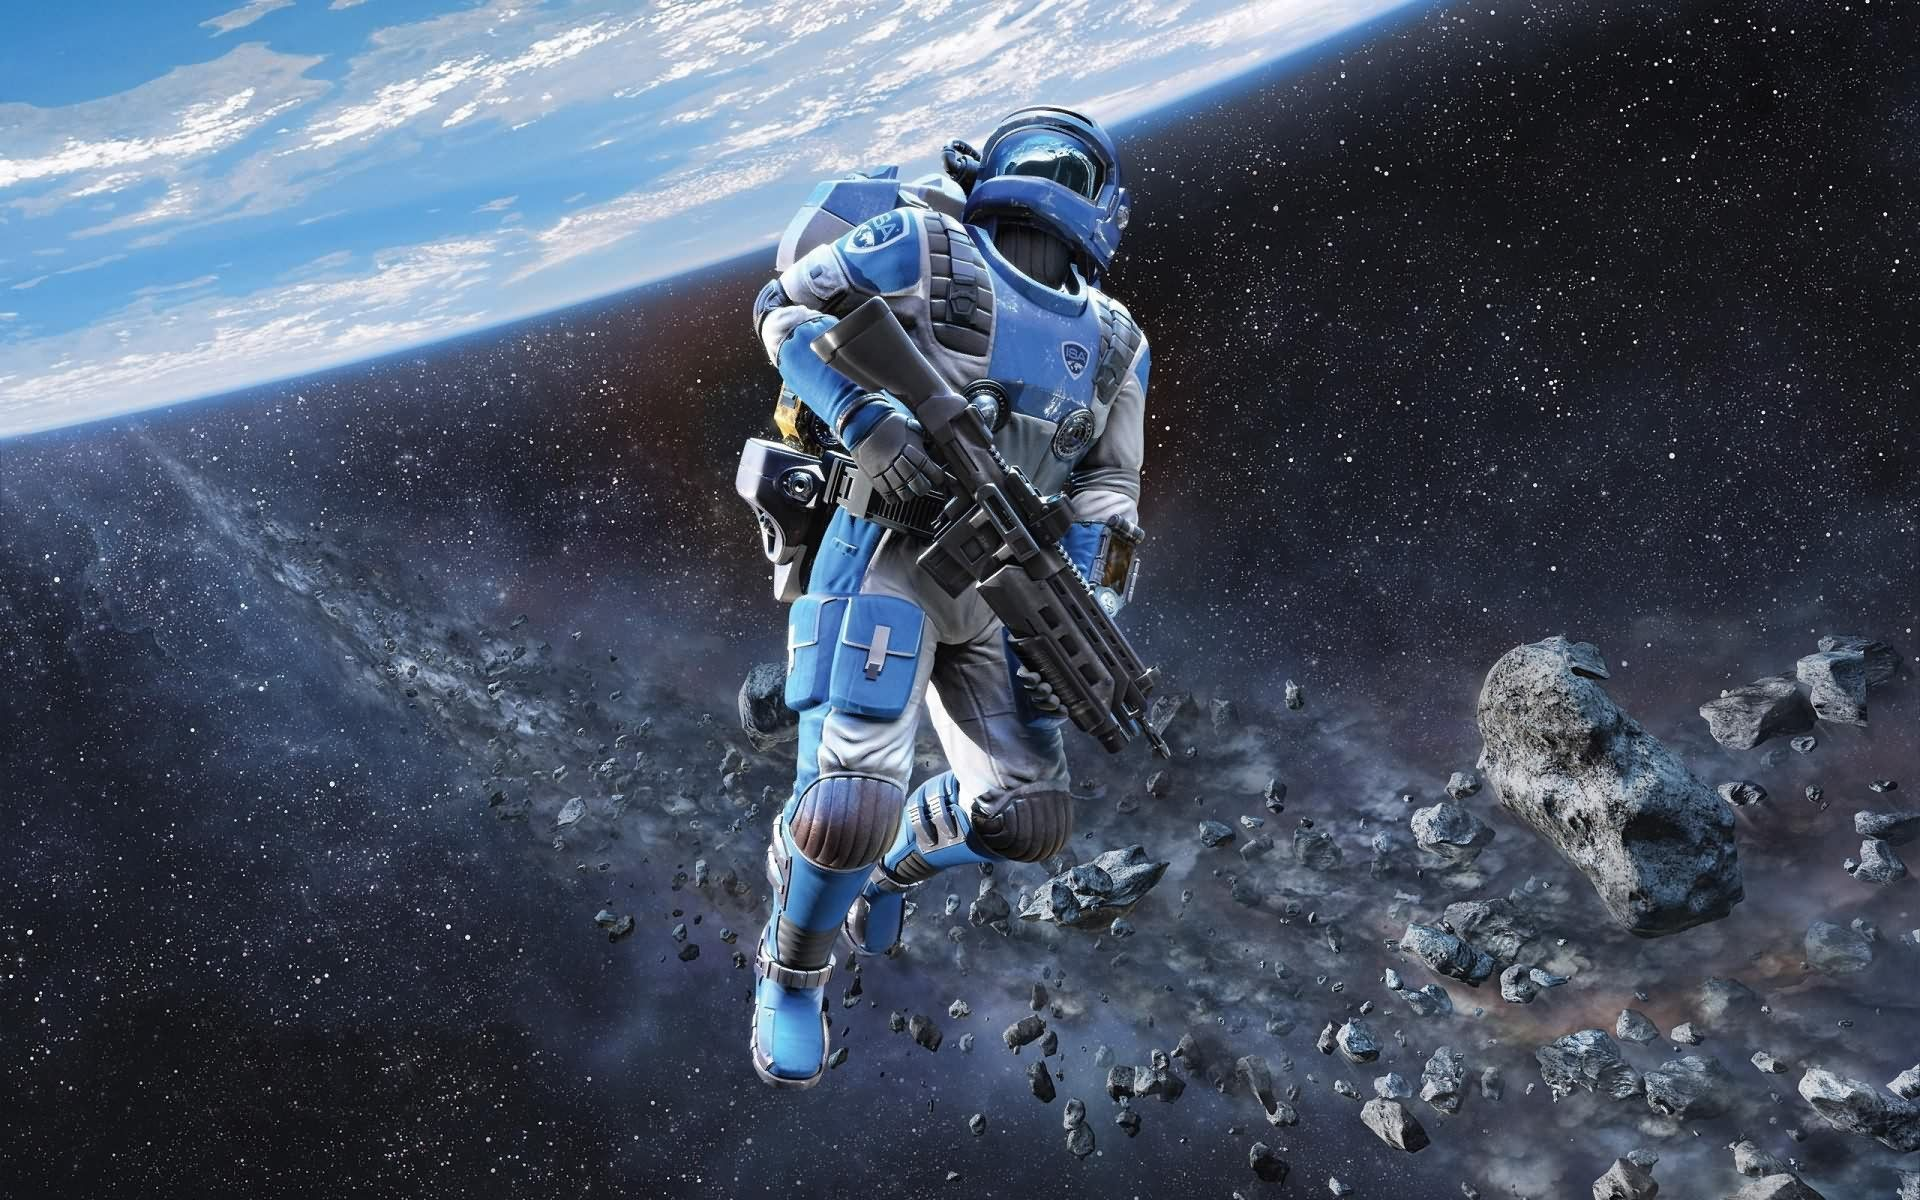 Scifi Wallpapers Full Hd Wallpaper Search Page 2 In 2019